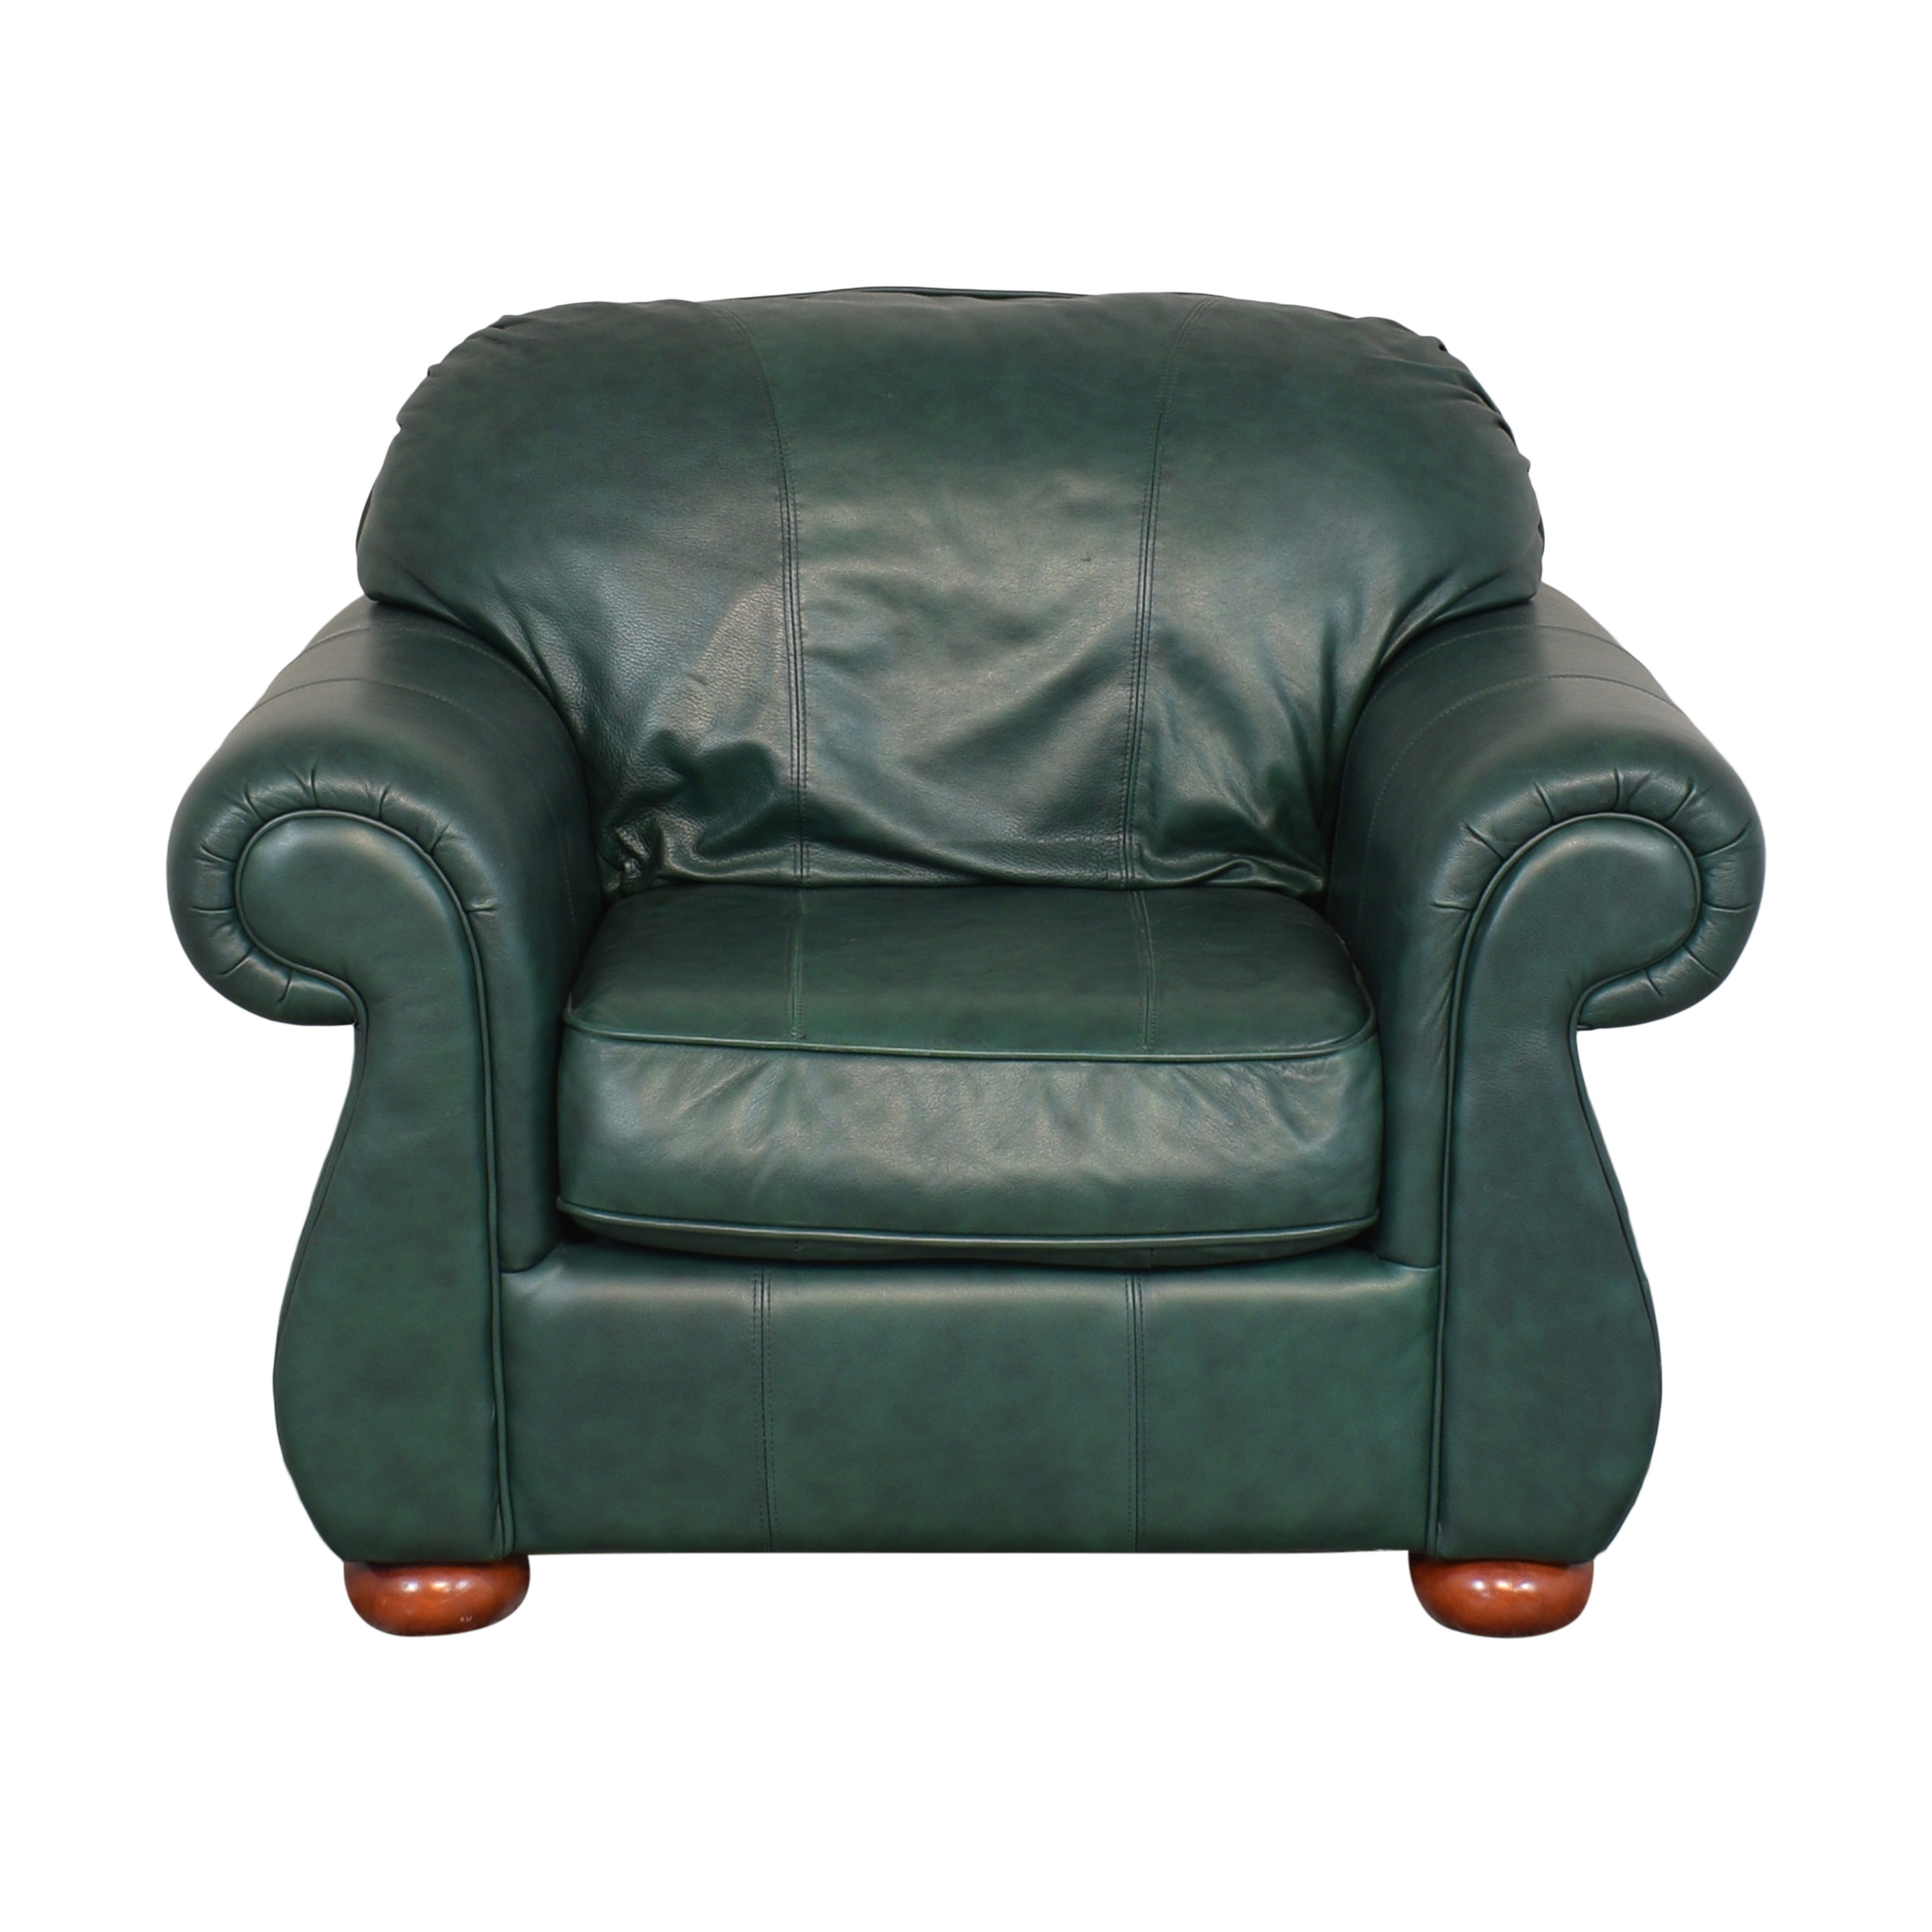 Drexel Drexel Studio Chair with Ottoman Chairs